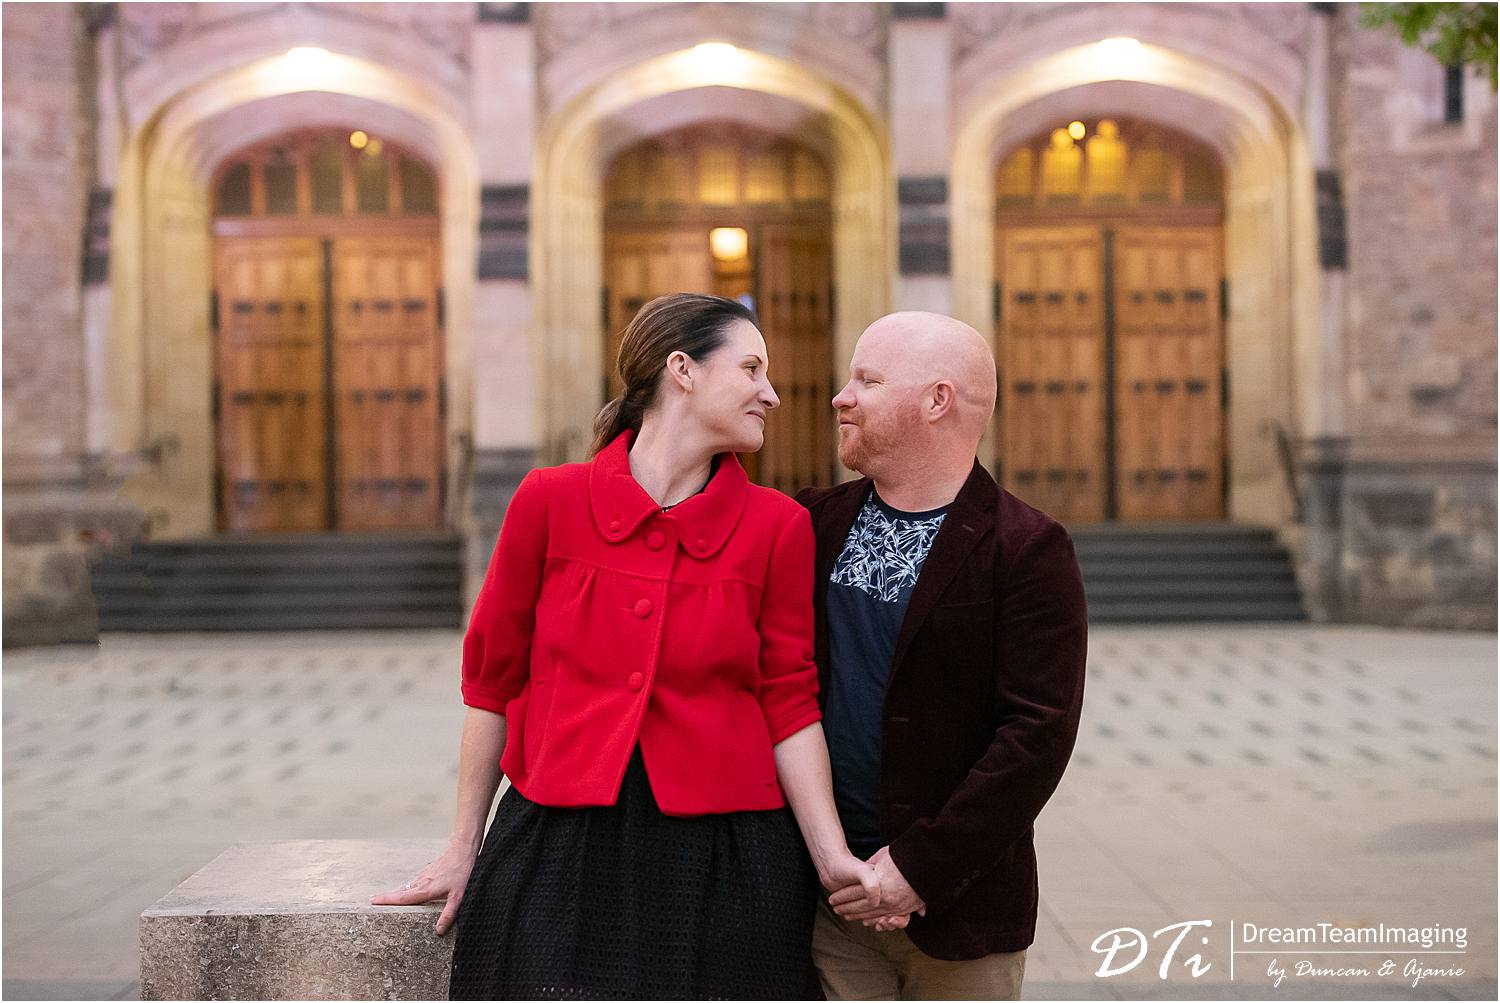 Adelaide cbd wedding, DreamTeamImaging